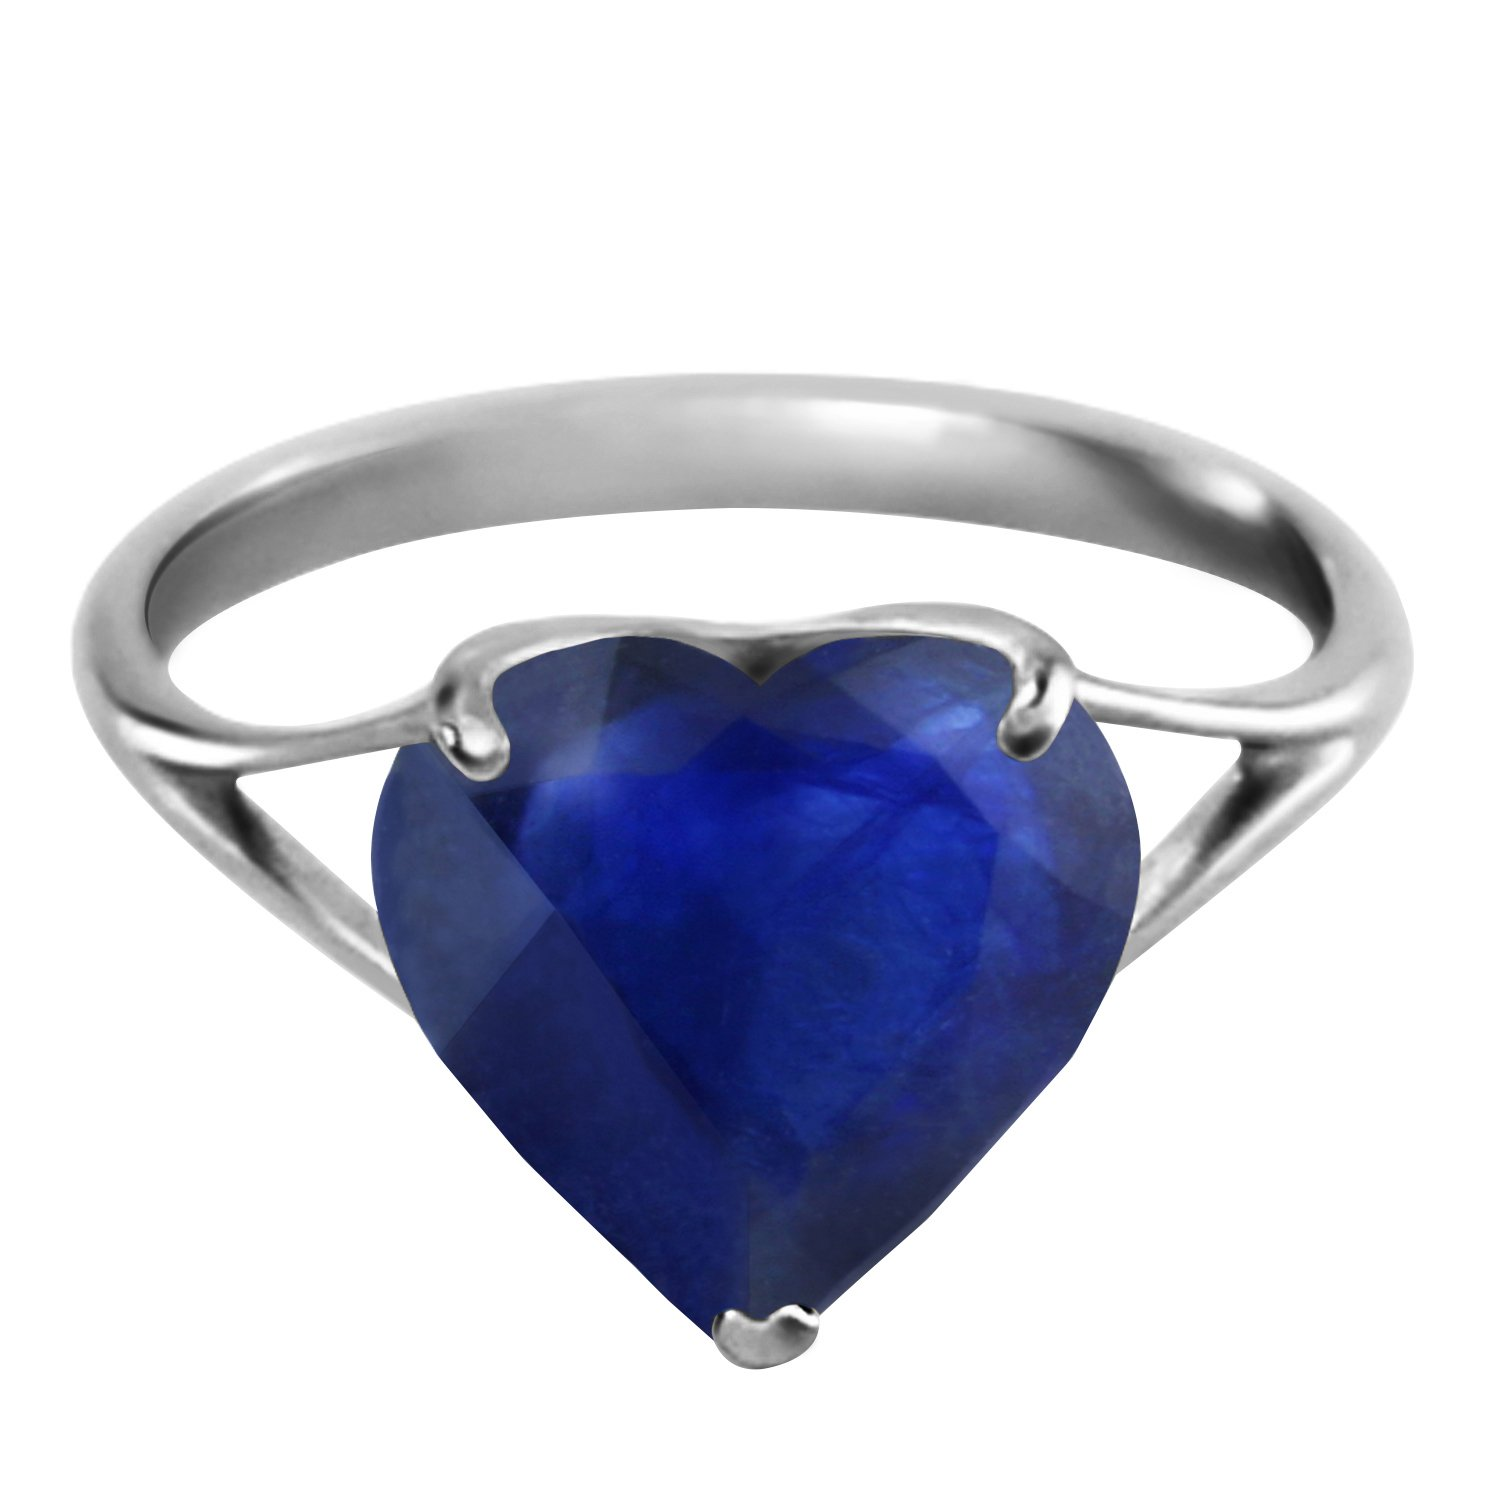 K14 Yellow, White, Rose Gold Ring with Natural 10mm Heart-shaped Sapphire 9.5  B00YFV4ALA